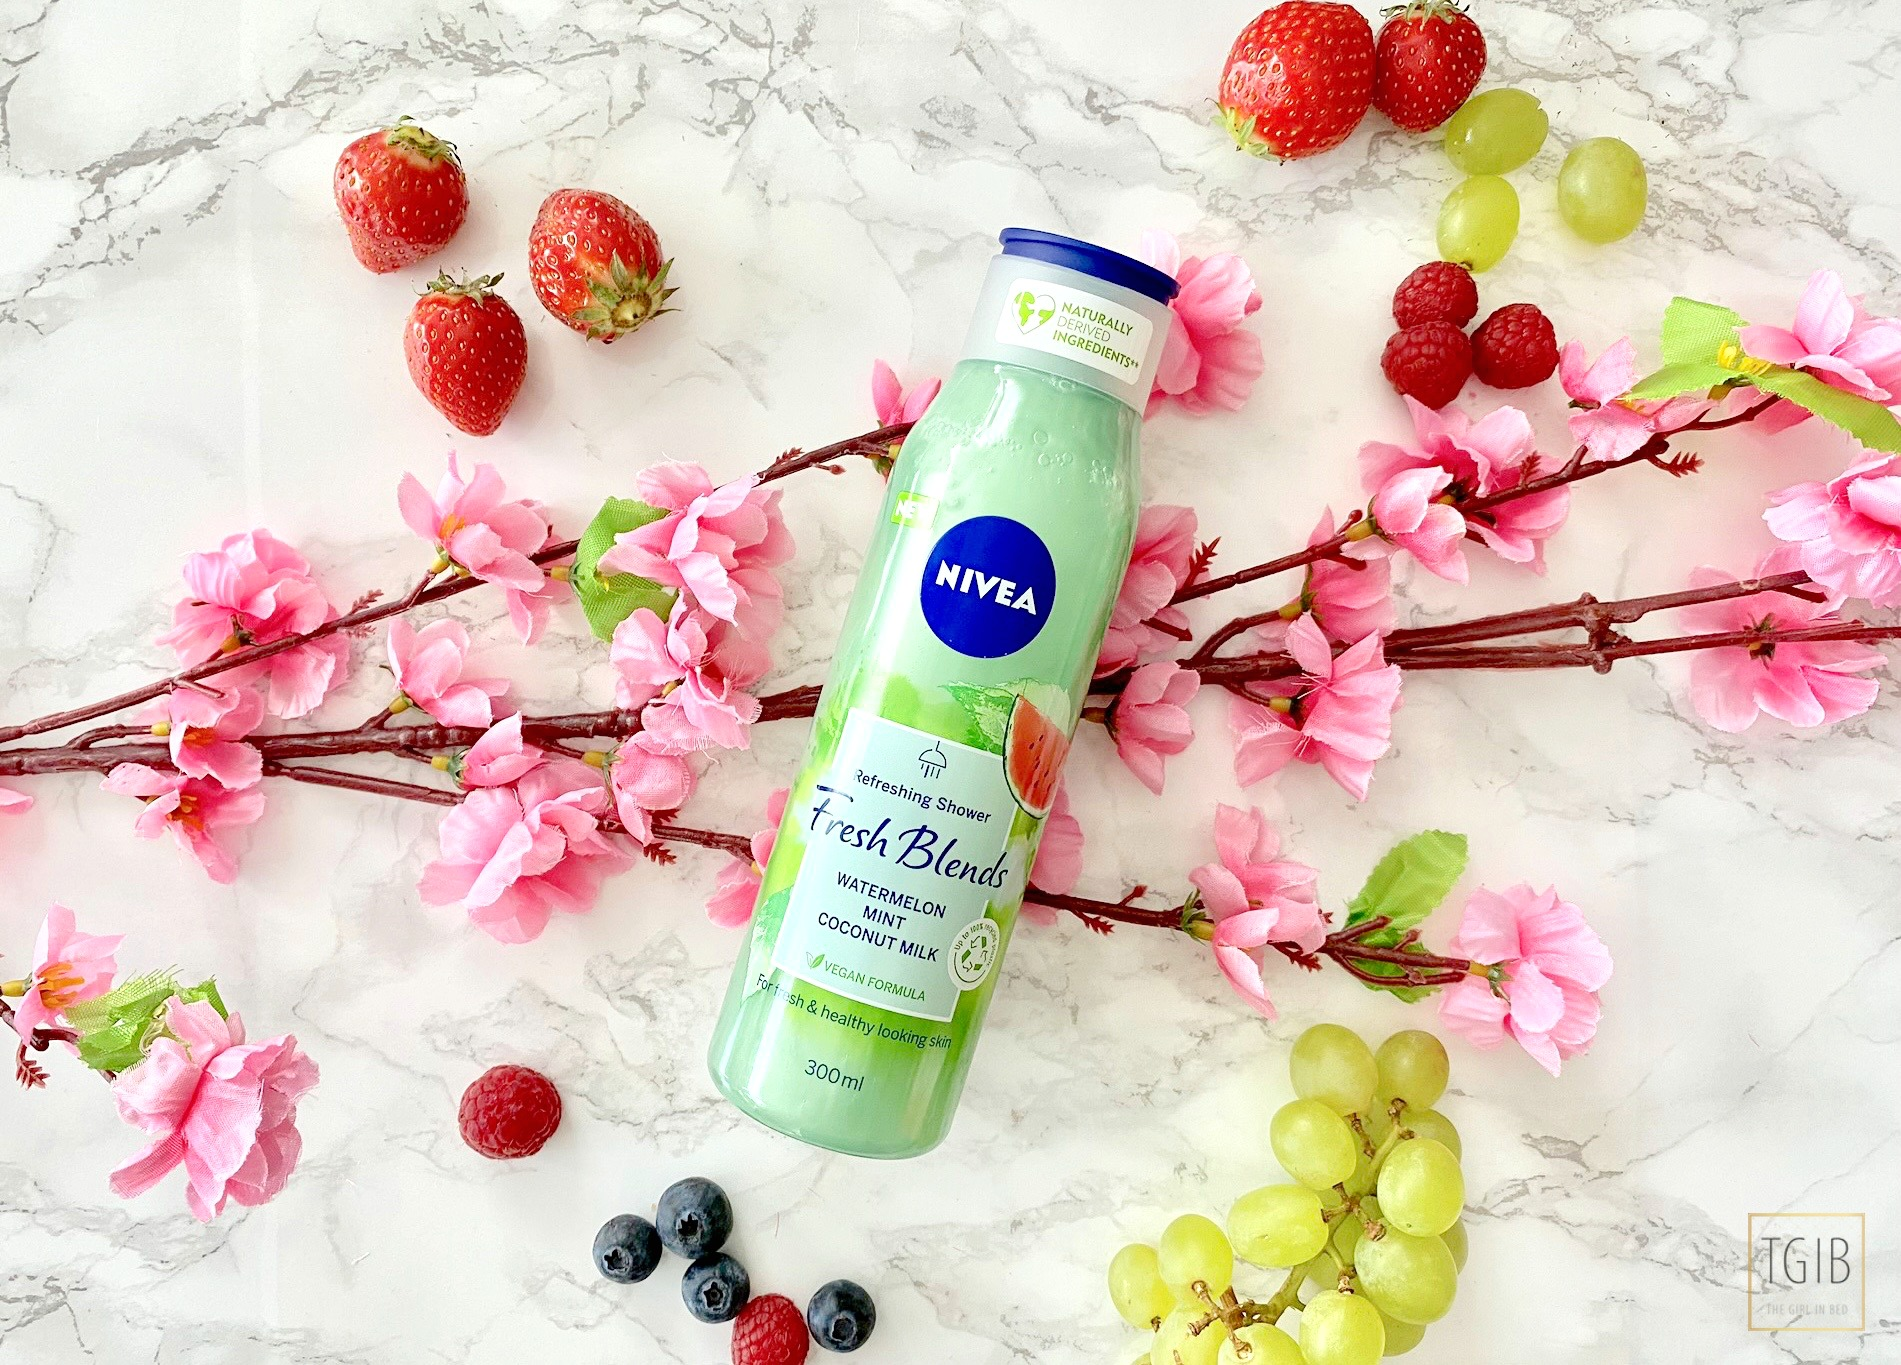 nivea Fresh Blends Watermelon, Mint & Coconut Milk